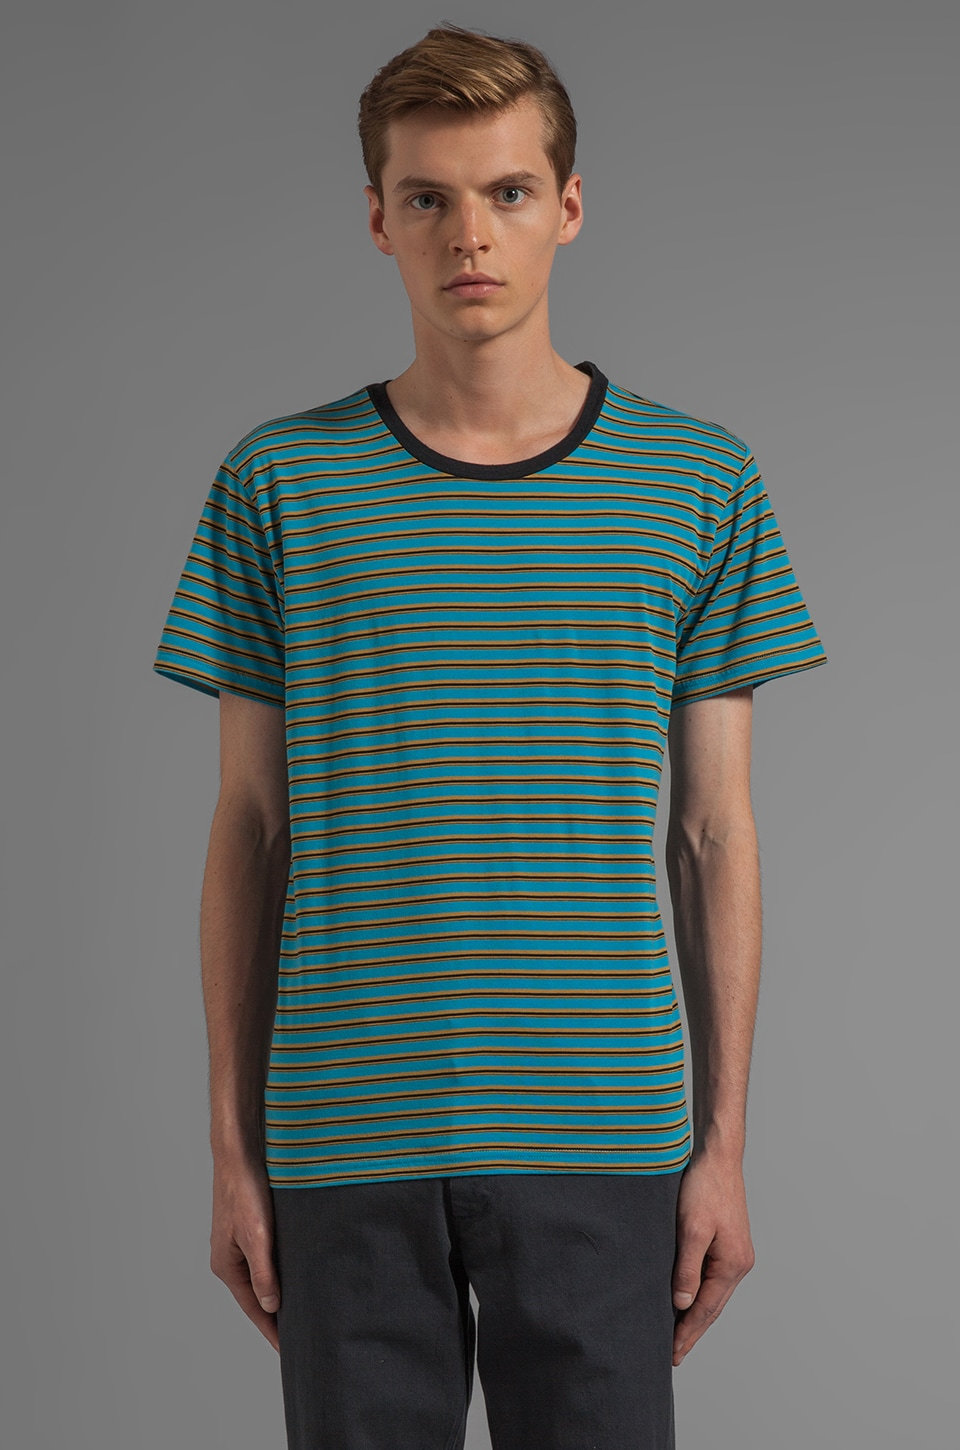 RVCA X Alex Knost Signature Collection Smile S/S Stripe Tee in Blue Jay